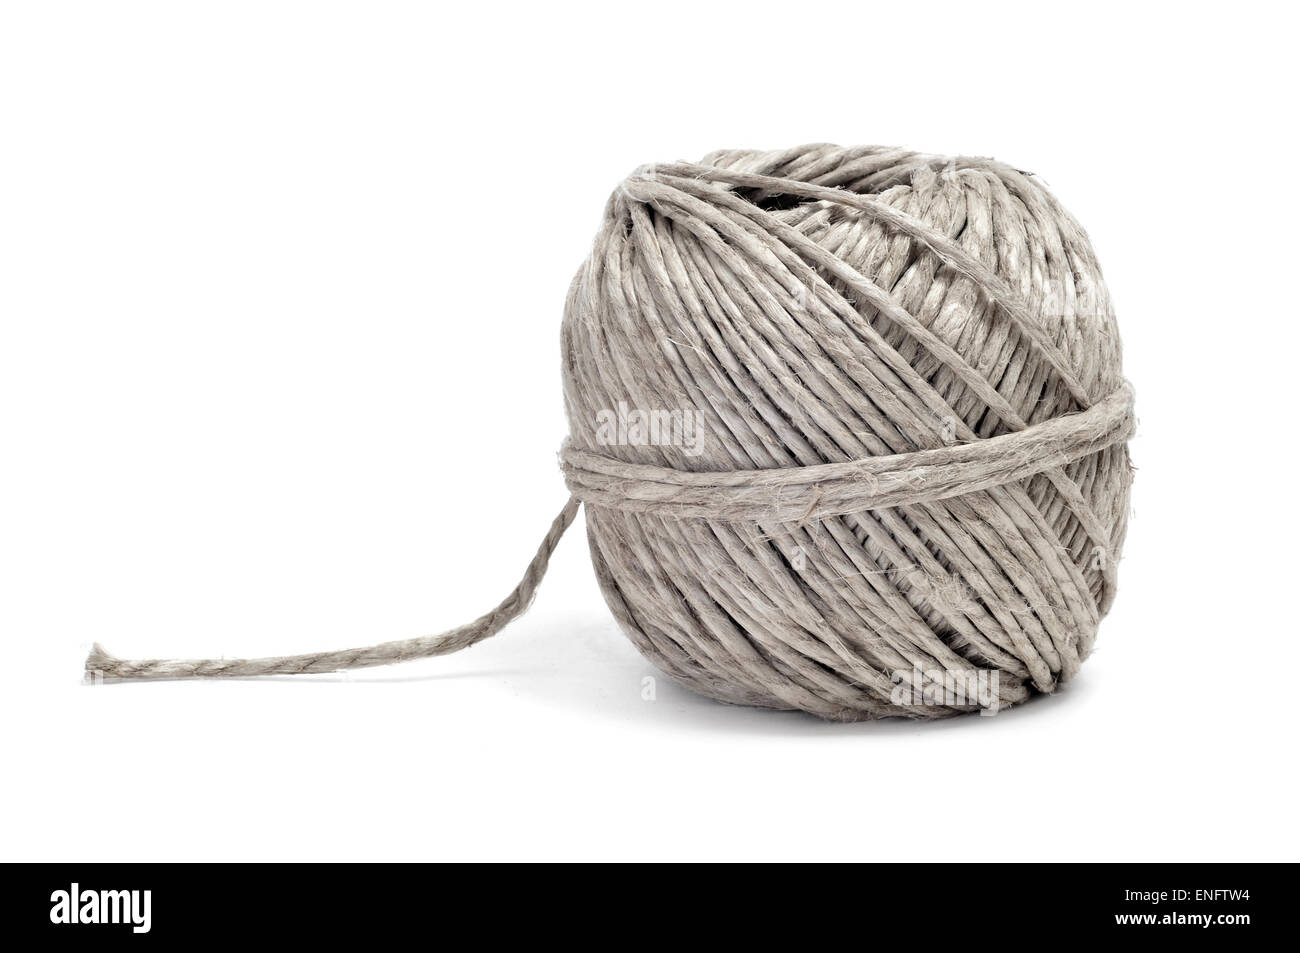 closeup of a coil of hemp twine on a white background - Stock Image